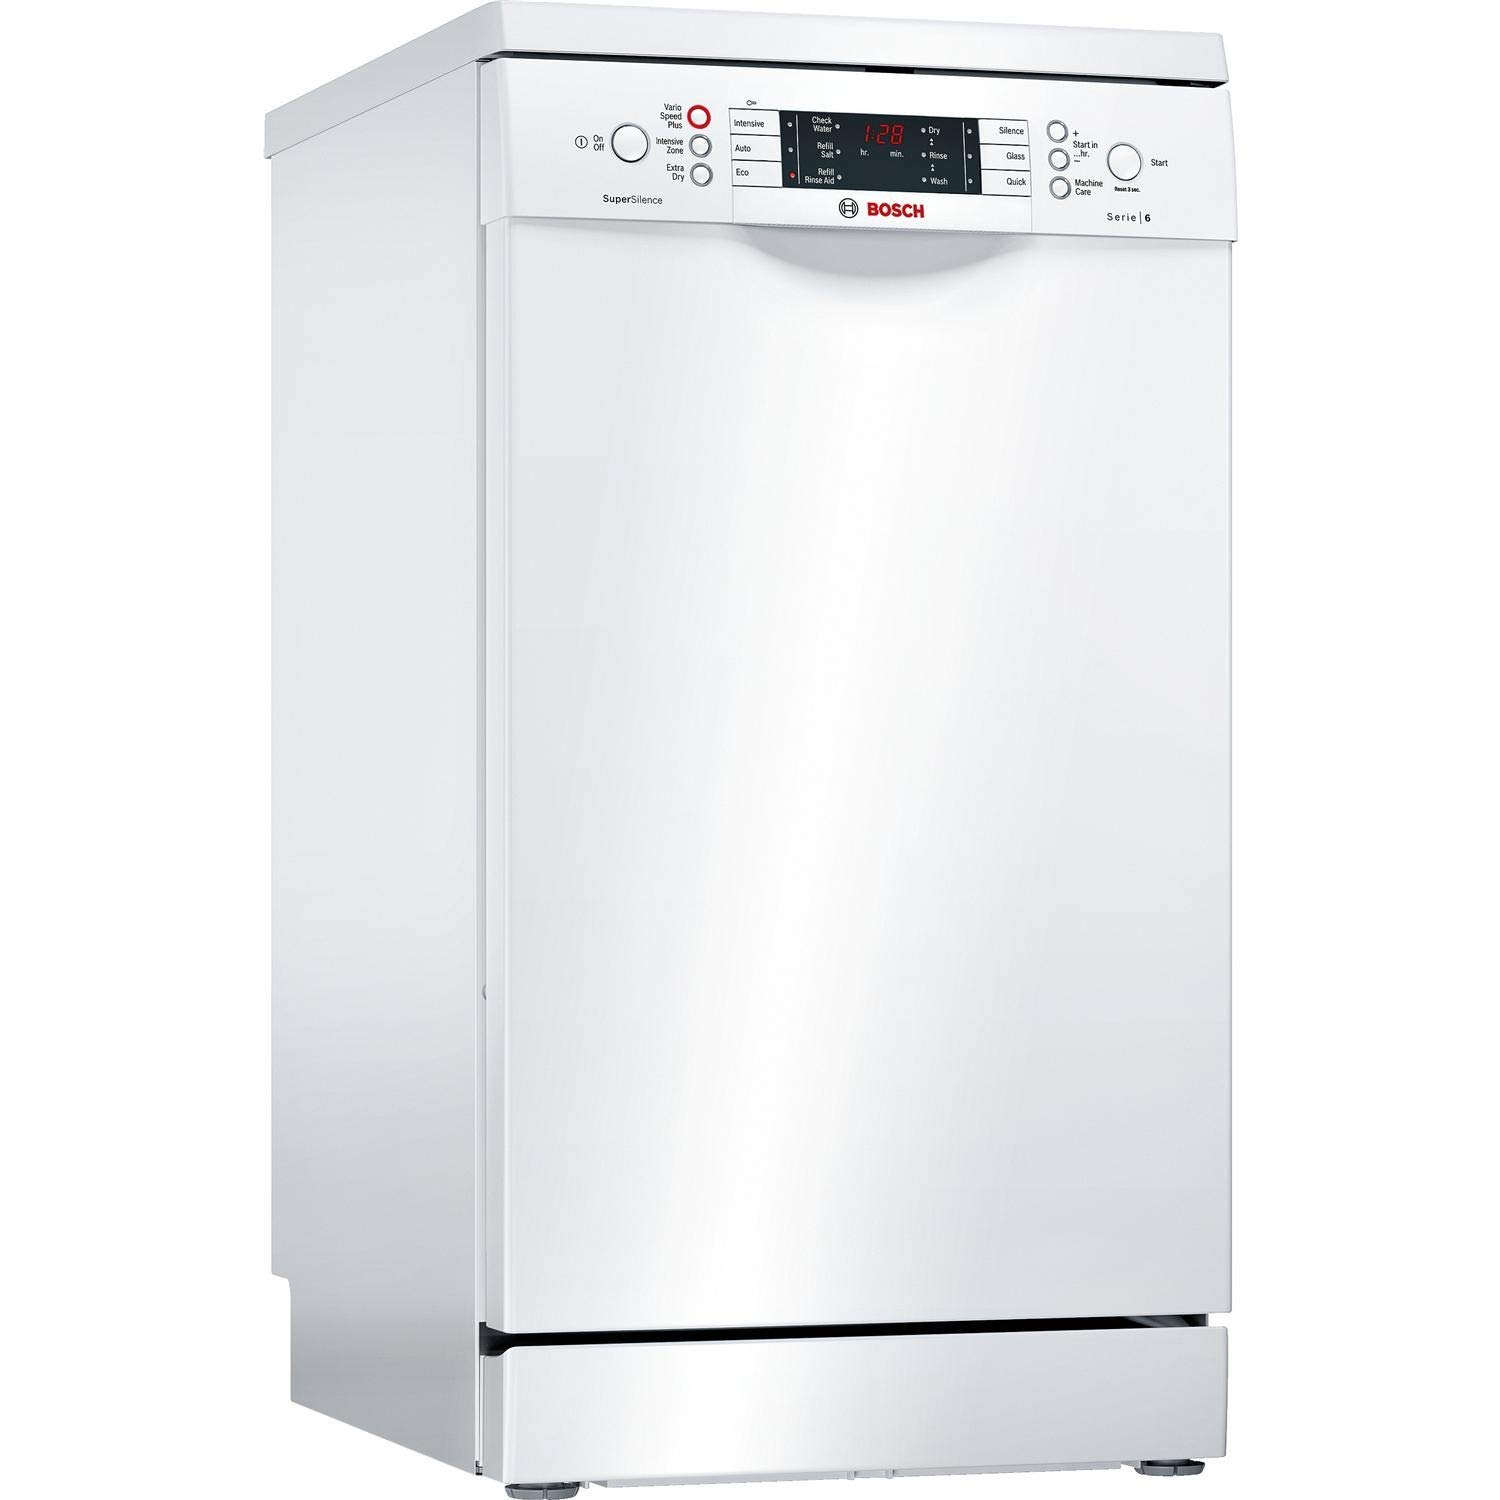 Bosch SPS66TW00G Serie 6 Silence Plus 10 Place Slimline Freestanding Dishwasher - White [Energy Class A++]